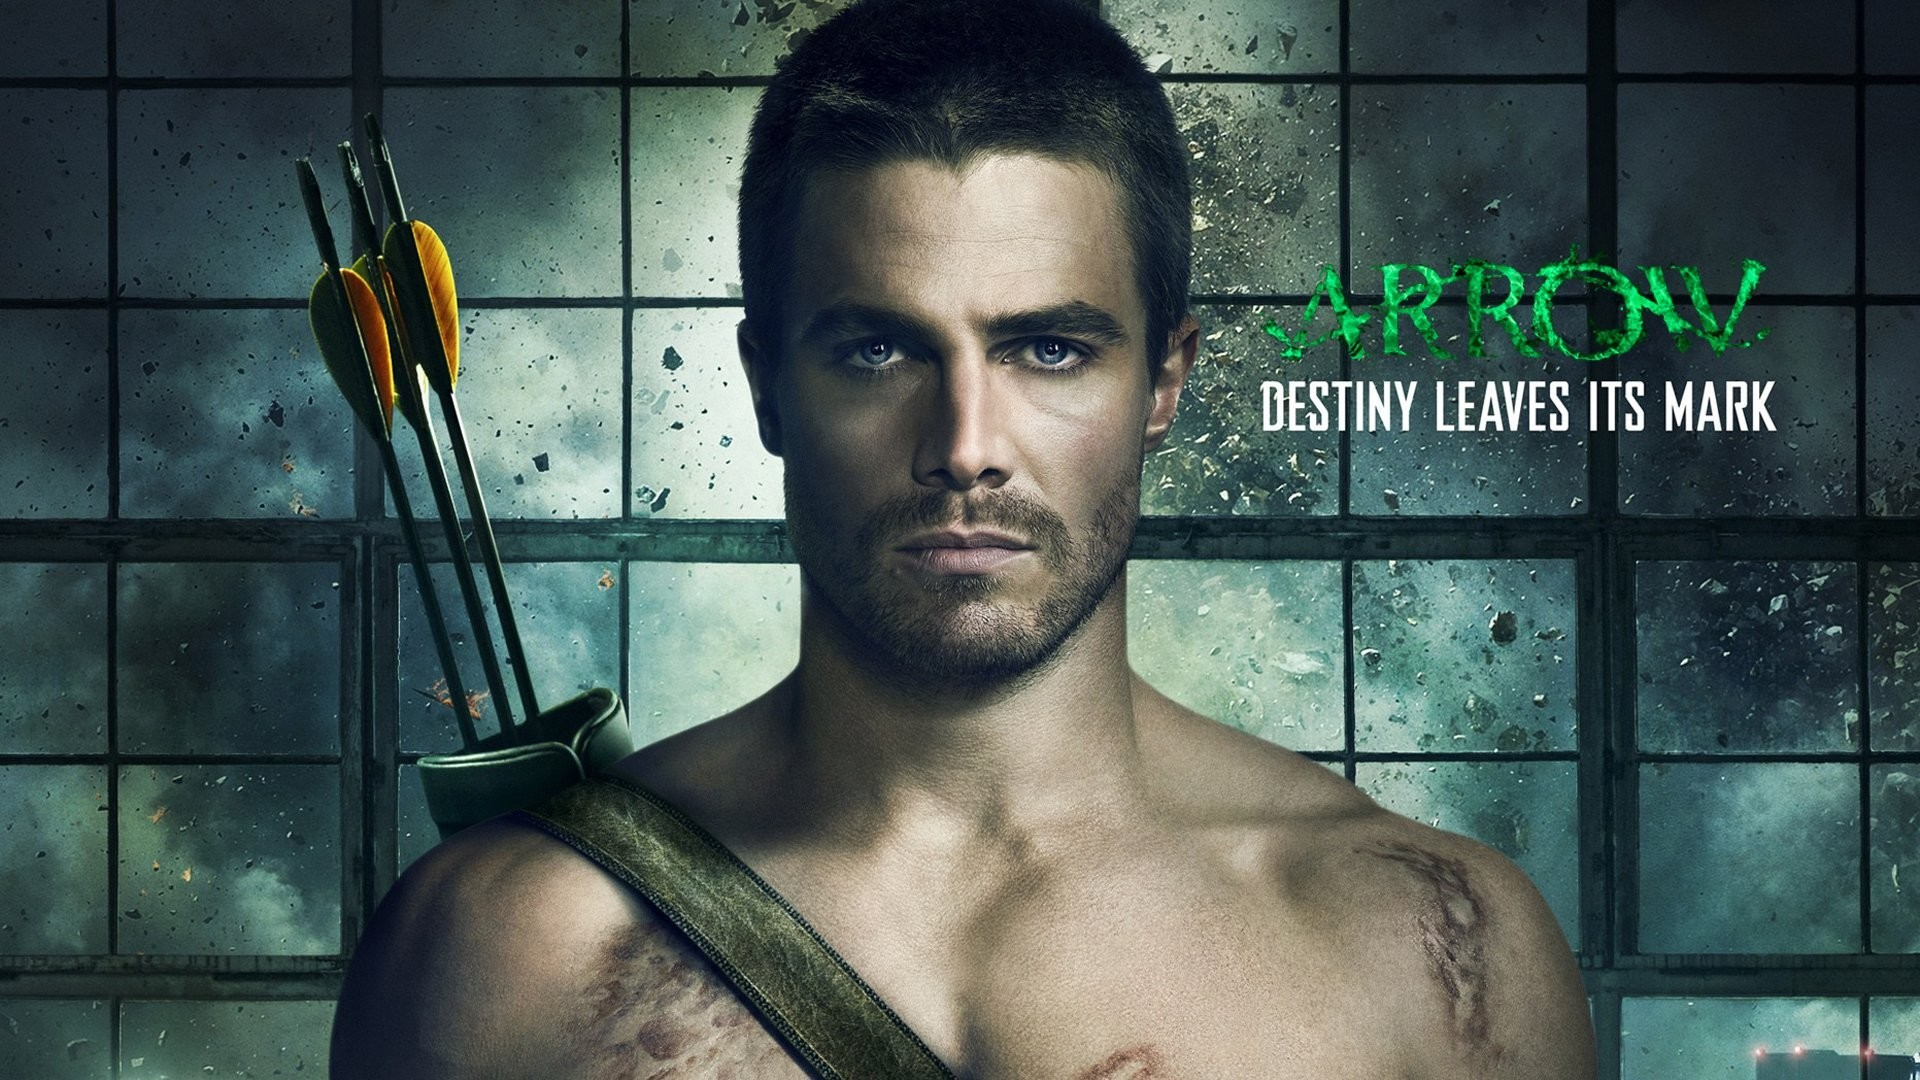 1920x1080 arrow arrow green arrow green arrow oliver queen oliver queen tv tv series  stephen amell stephen